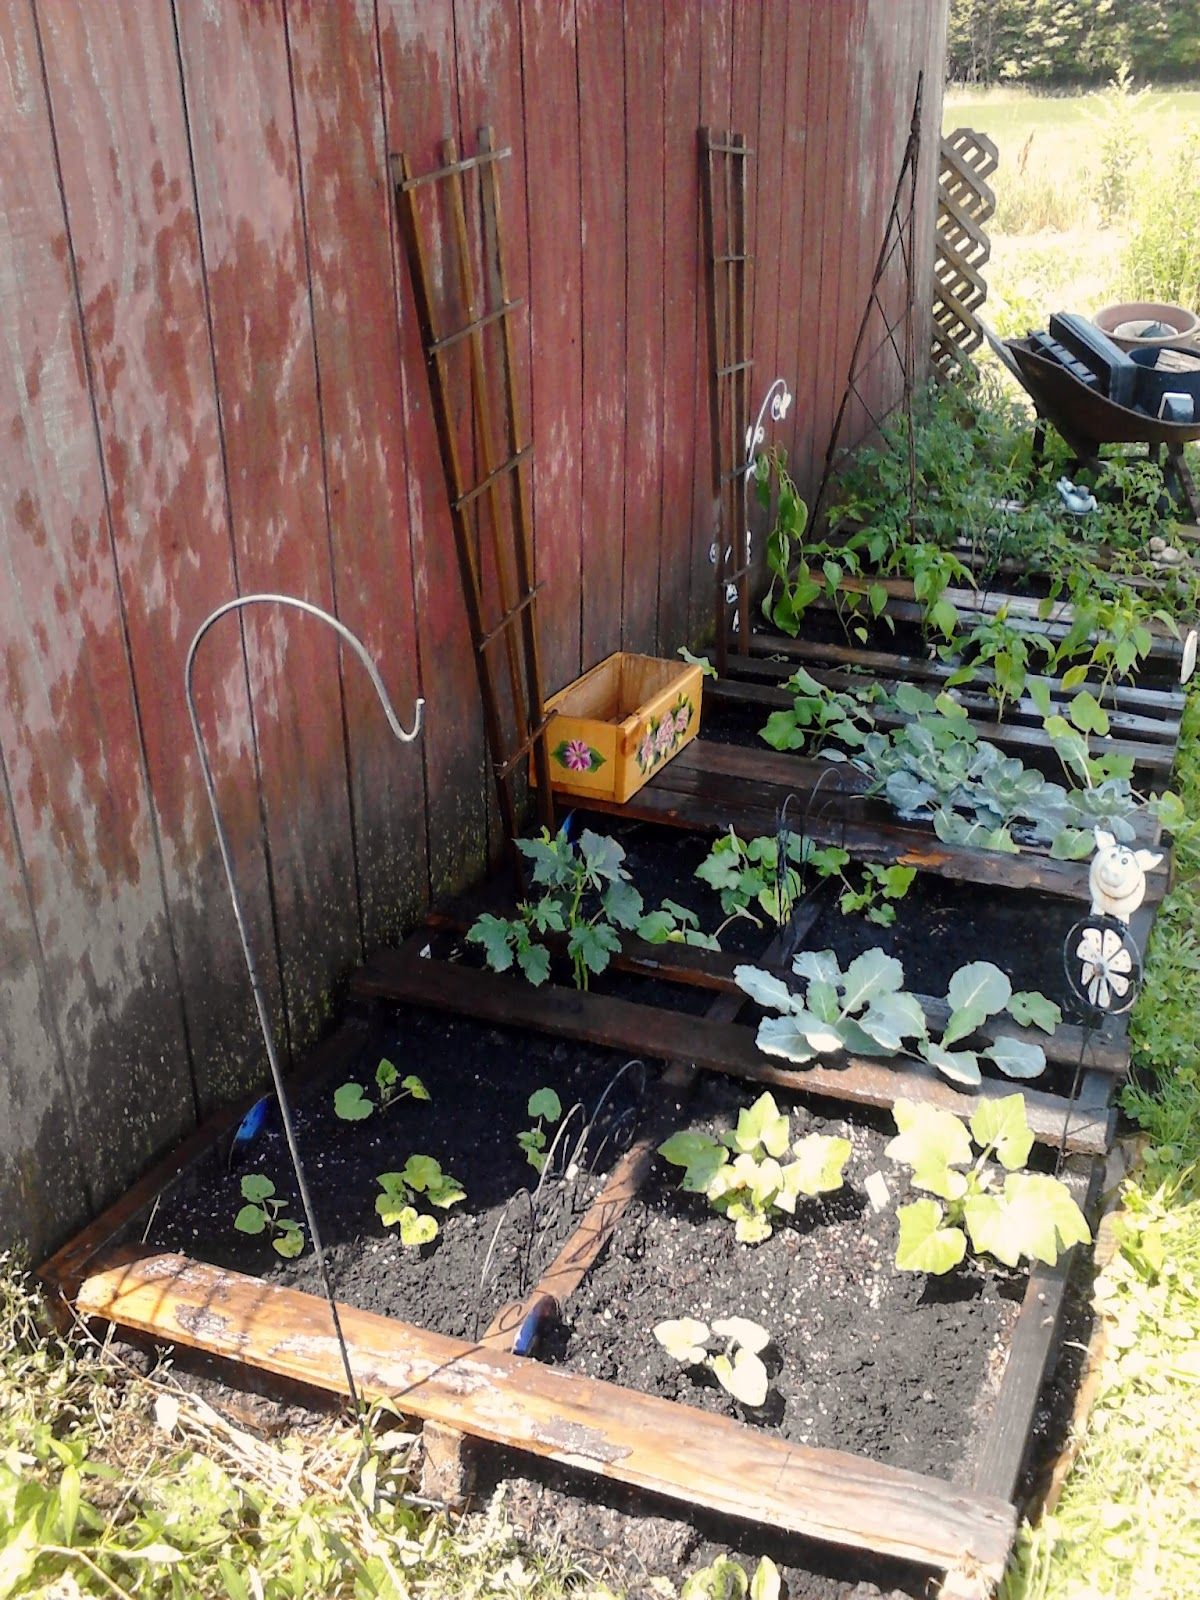 Medium Of Pallet Gardens Pinterest